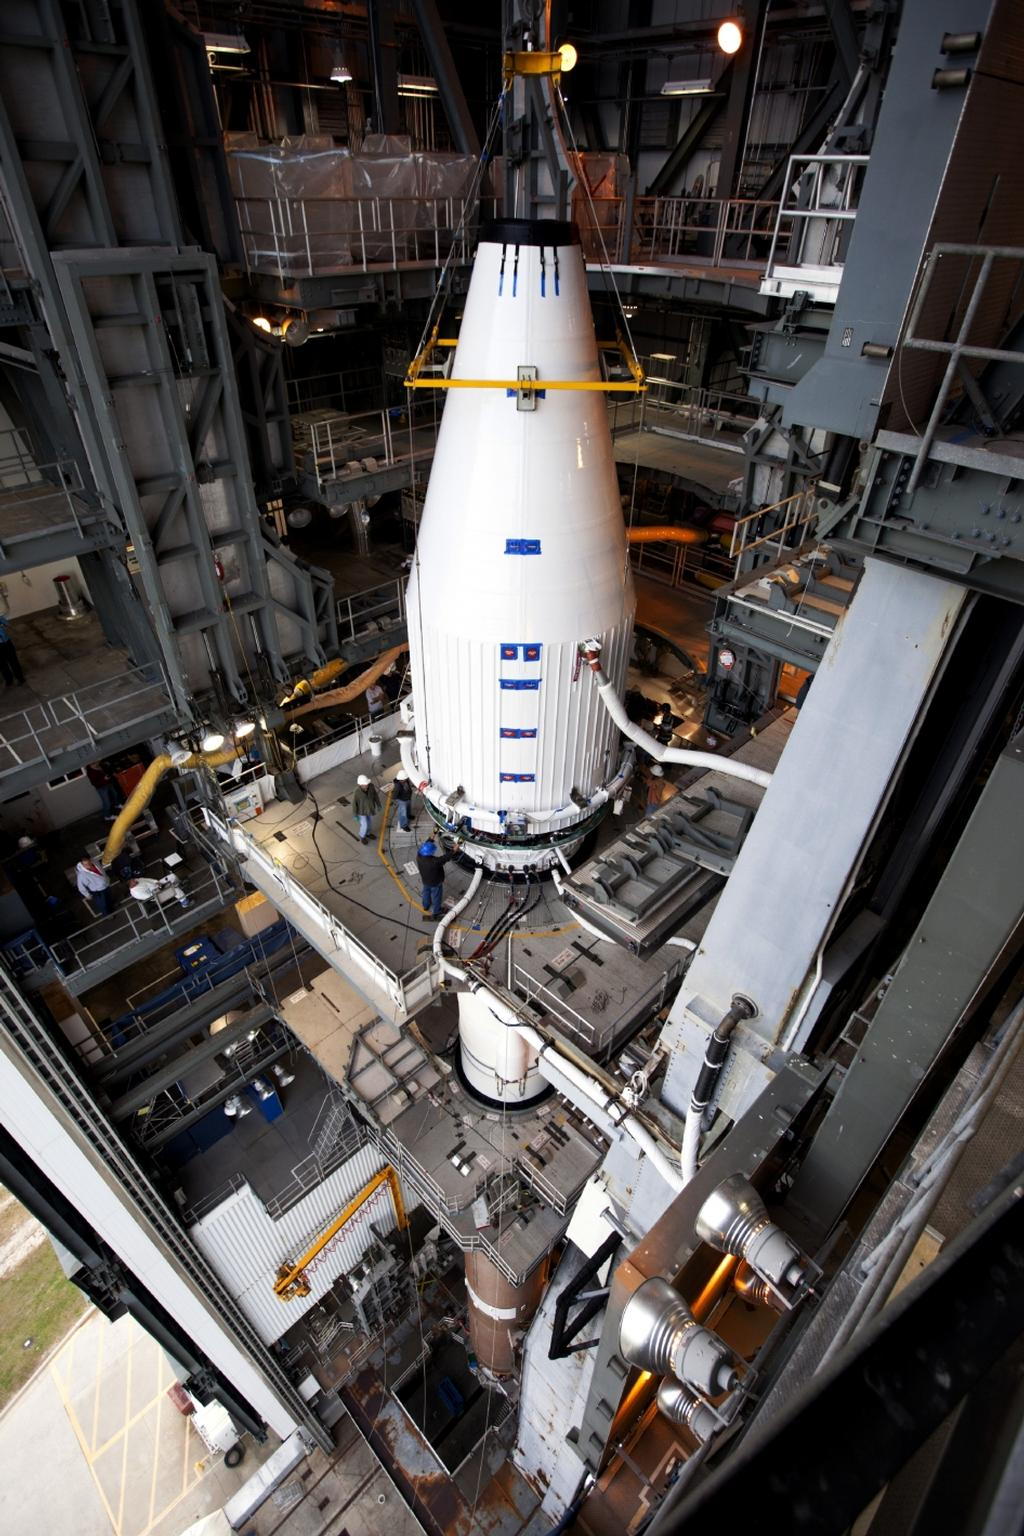 Crews guide NASA's Mars Atmosphere and Volatile EvolutioN, or MAVEN, spacecraft, inside a payload fairing, into place atop a United Launch Alliance Atlas V rocket at the Vertical Integration Facility at Space Launch Complex 41.